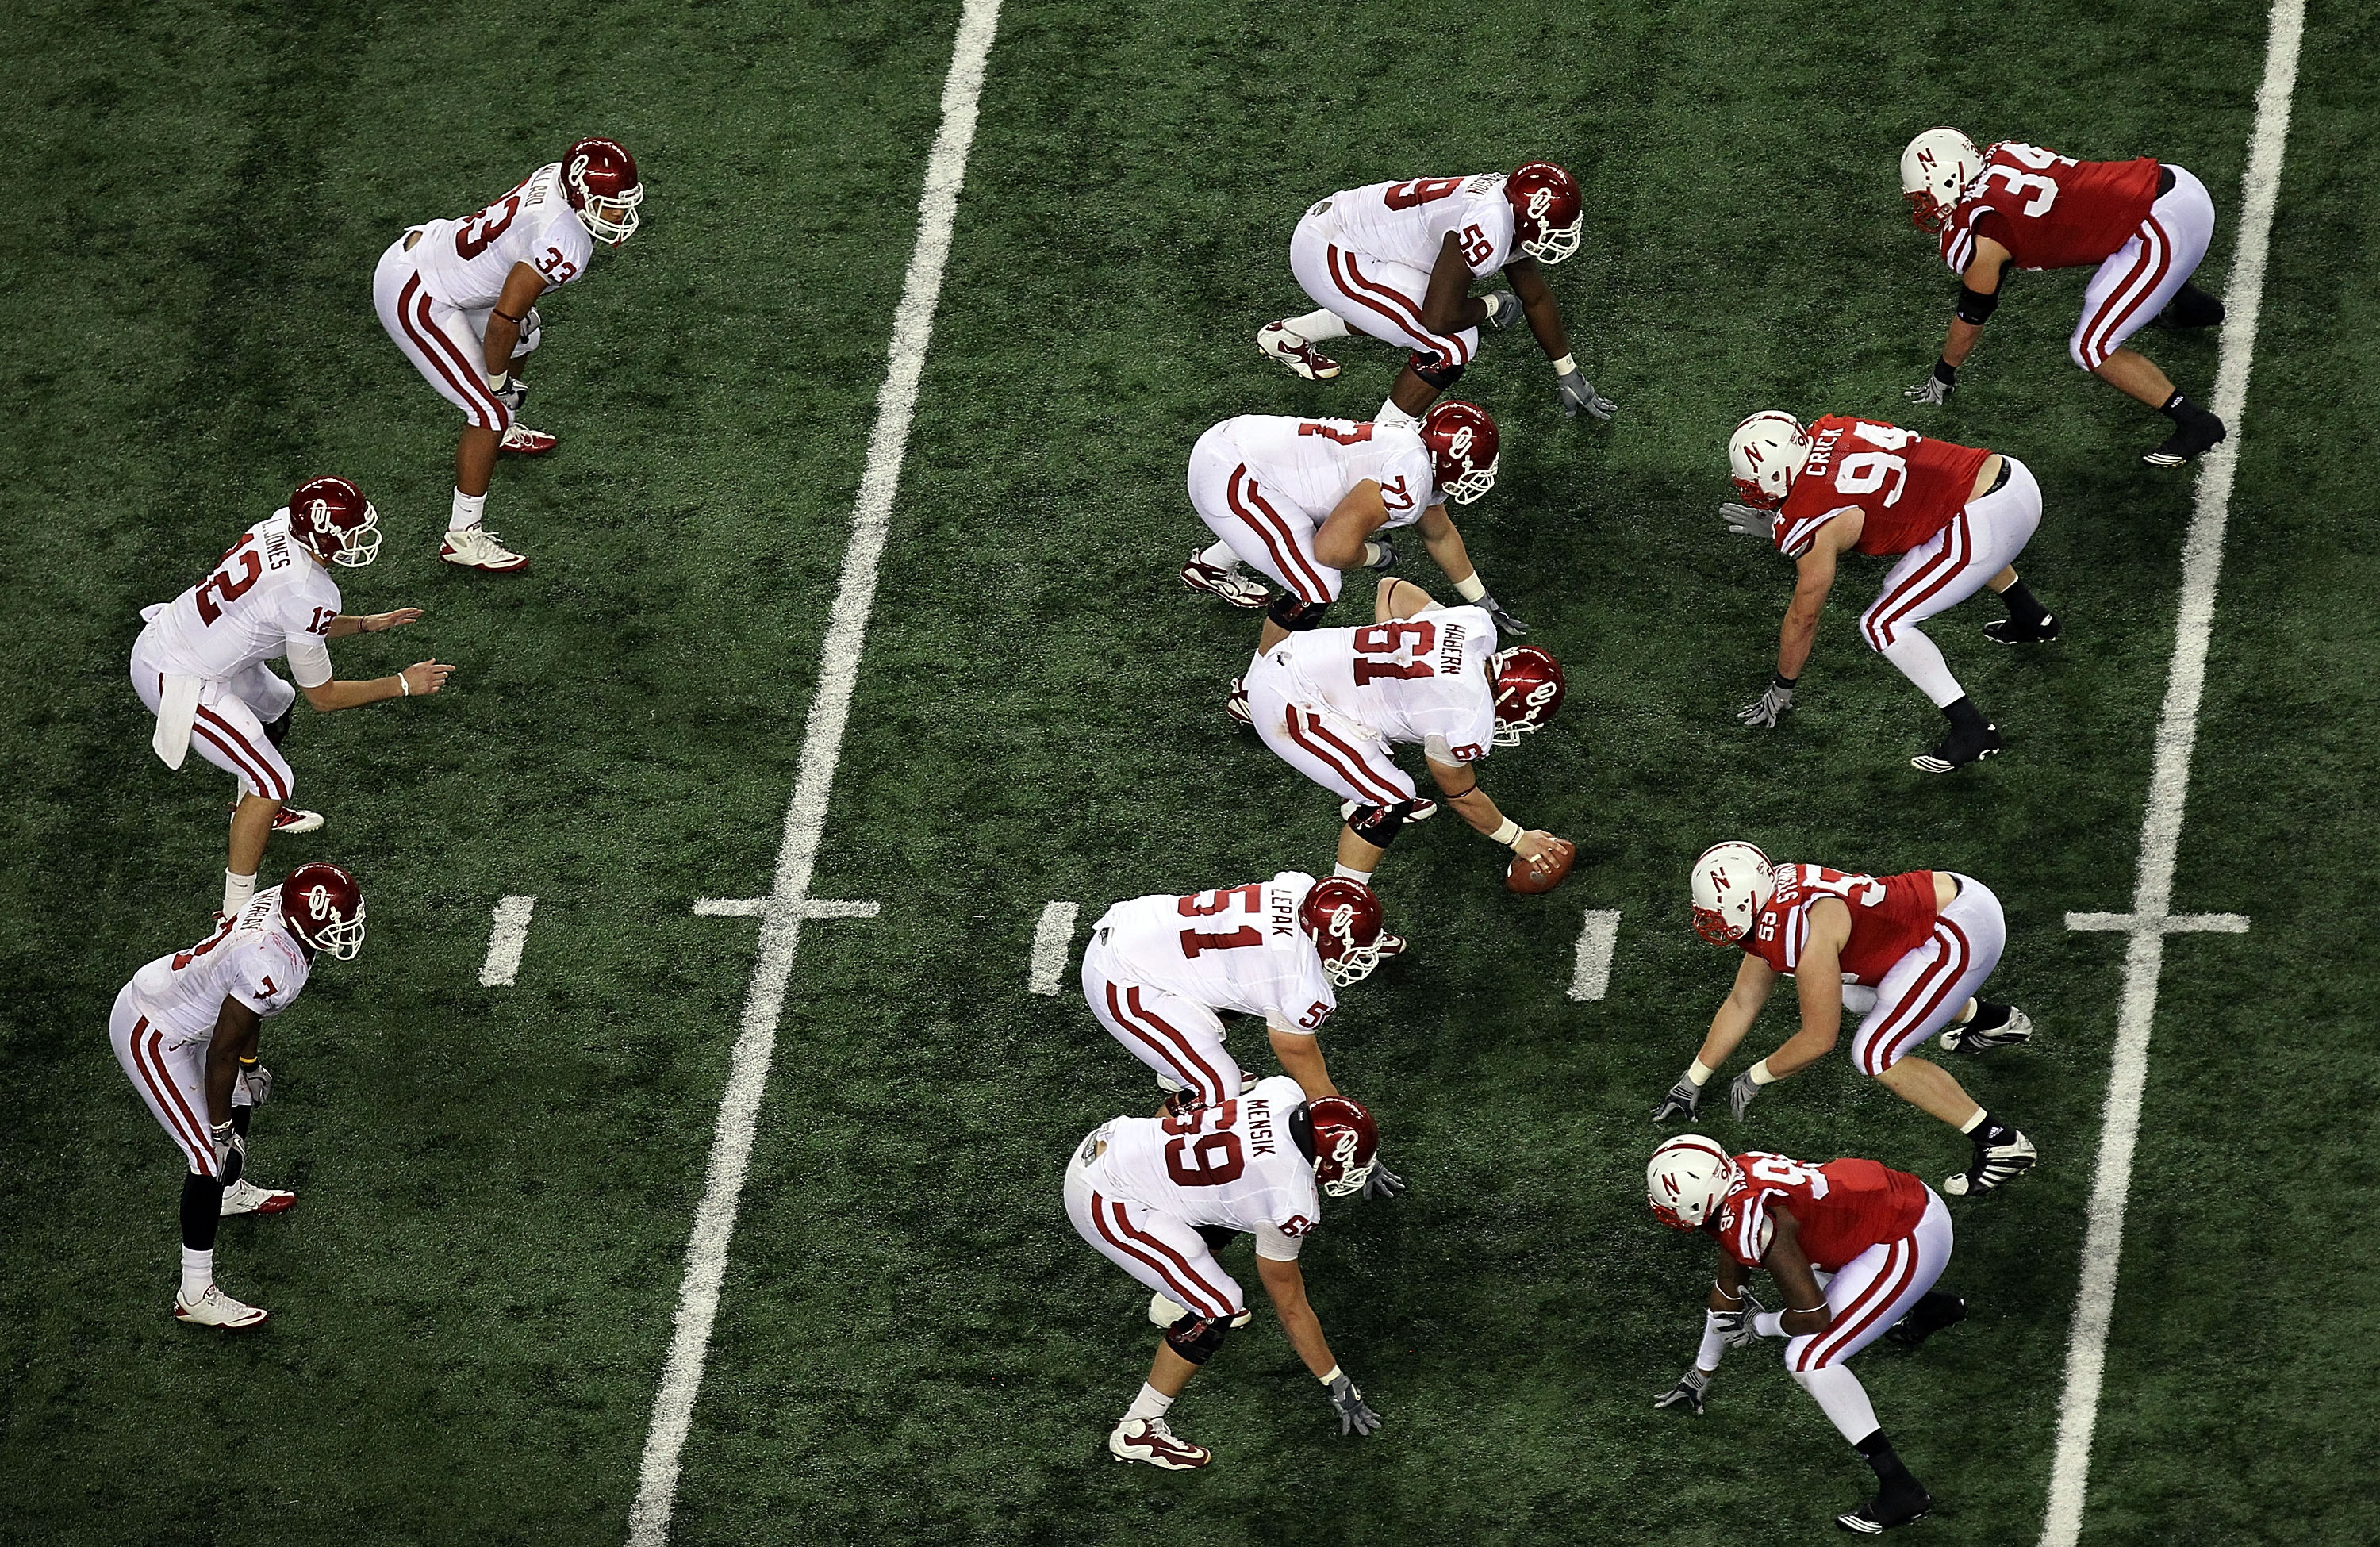 ARLINGTON, TX - DECEMBER 04:  The Oklahoma Sooners on offense against the Nebraska Cornhuskers during the Big 12 Championship at Cowboys Stadium on December 4, 2010 in Arlington, Texas.  (Photo by Ronald Martinez/Getty Images)